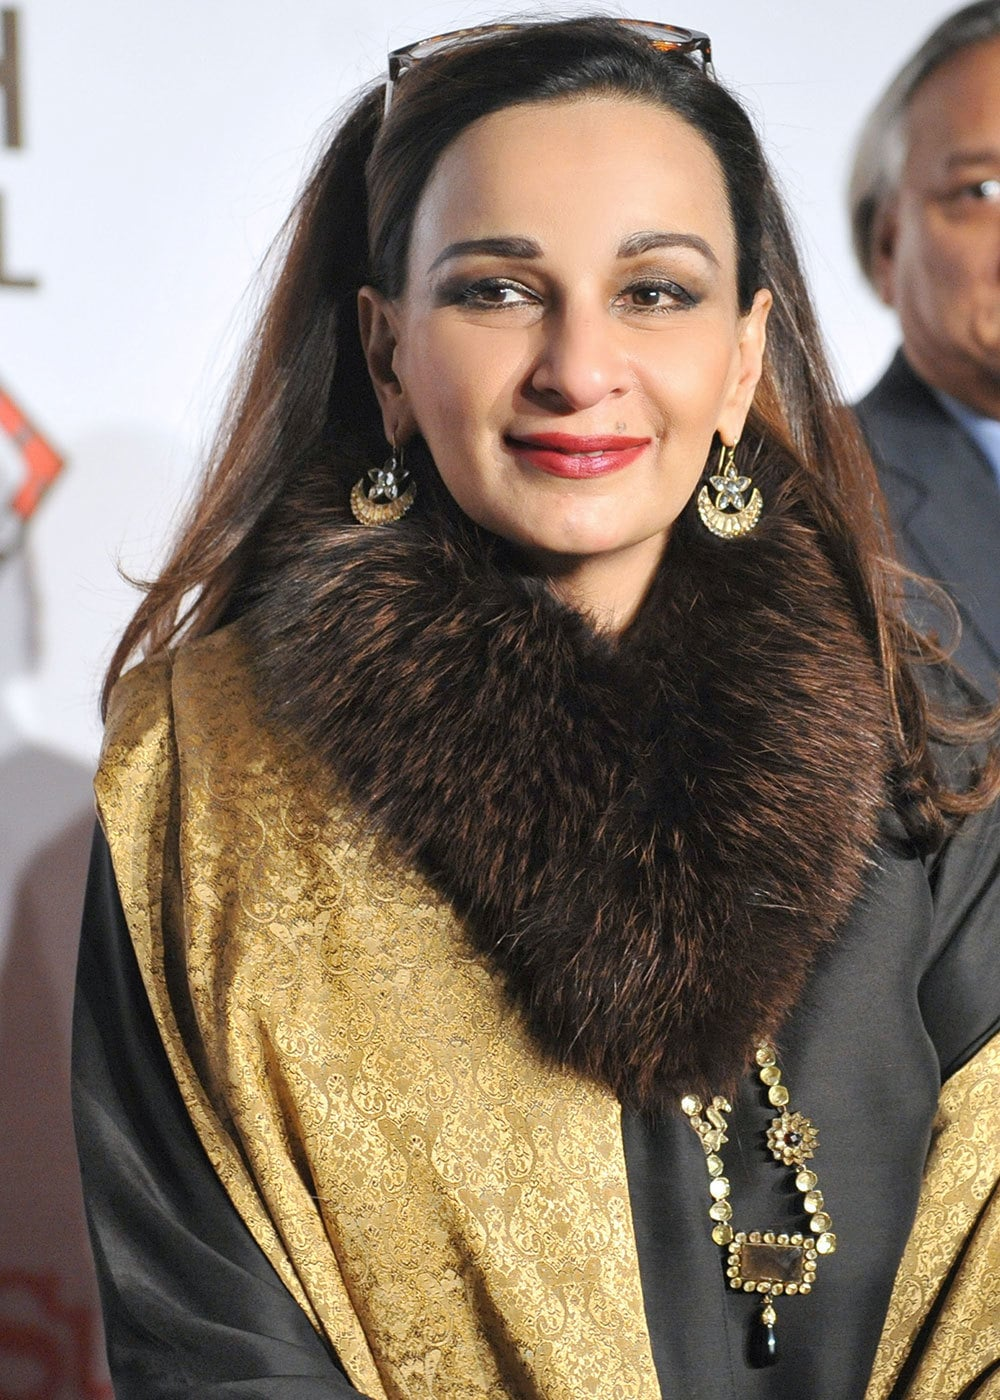 Sherry Rehman in what we hope is a faux fur collar!